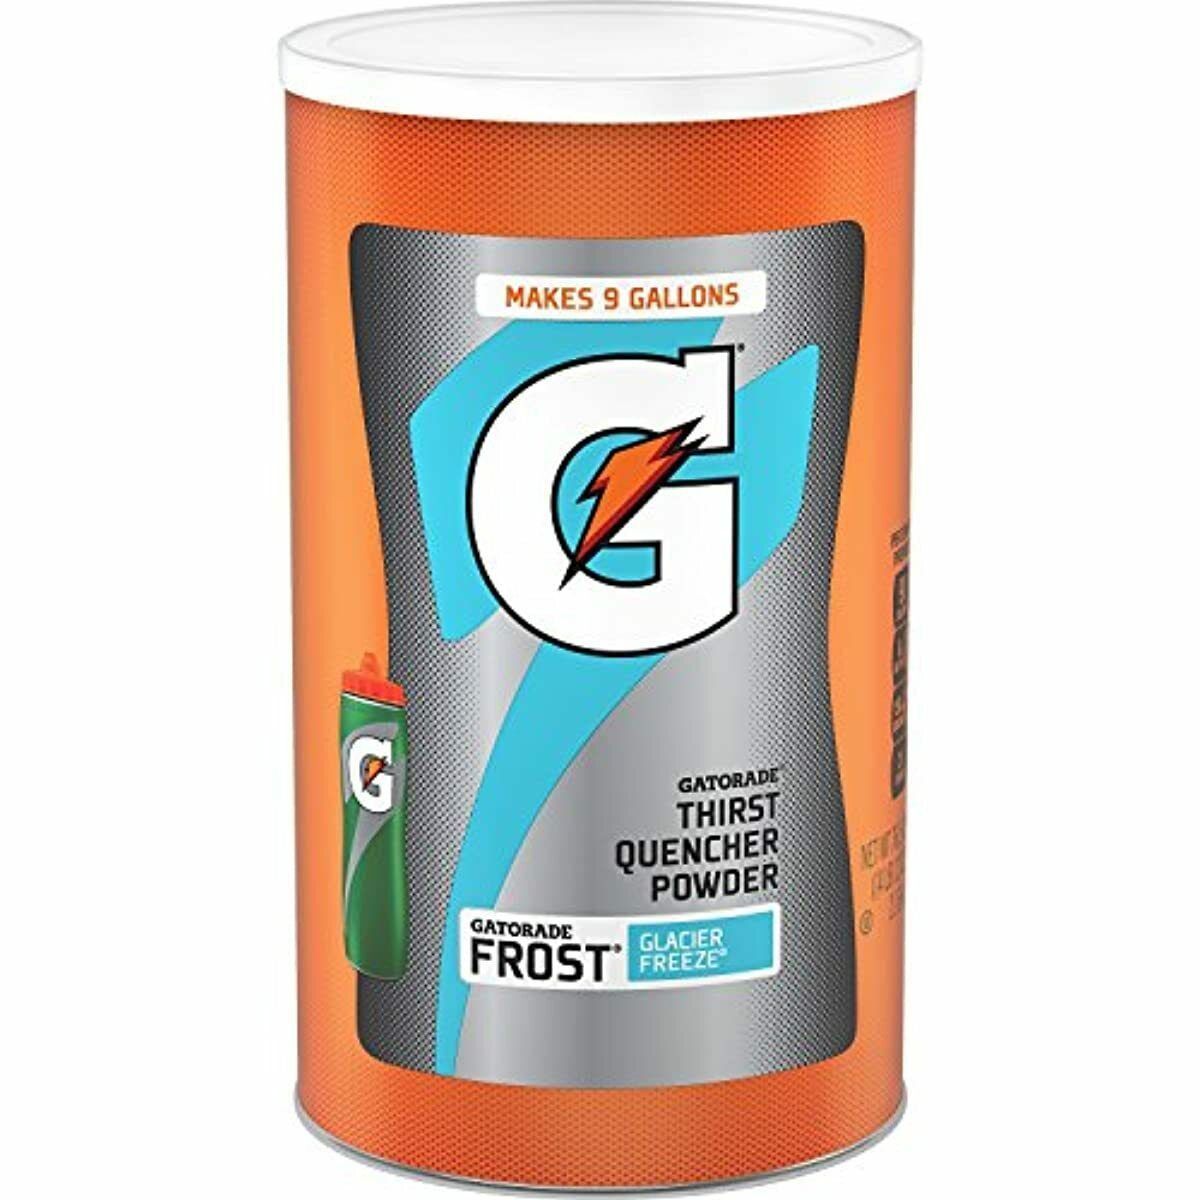 Gatorade Thirst Quencher Powder, Frost Glacier Freeze, 76.5 Ounce, Pack Of 1 - $16.99